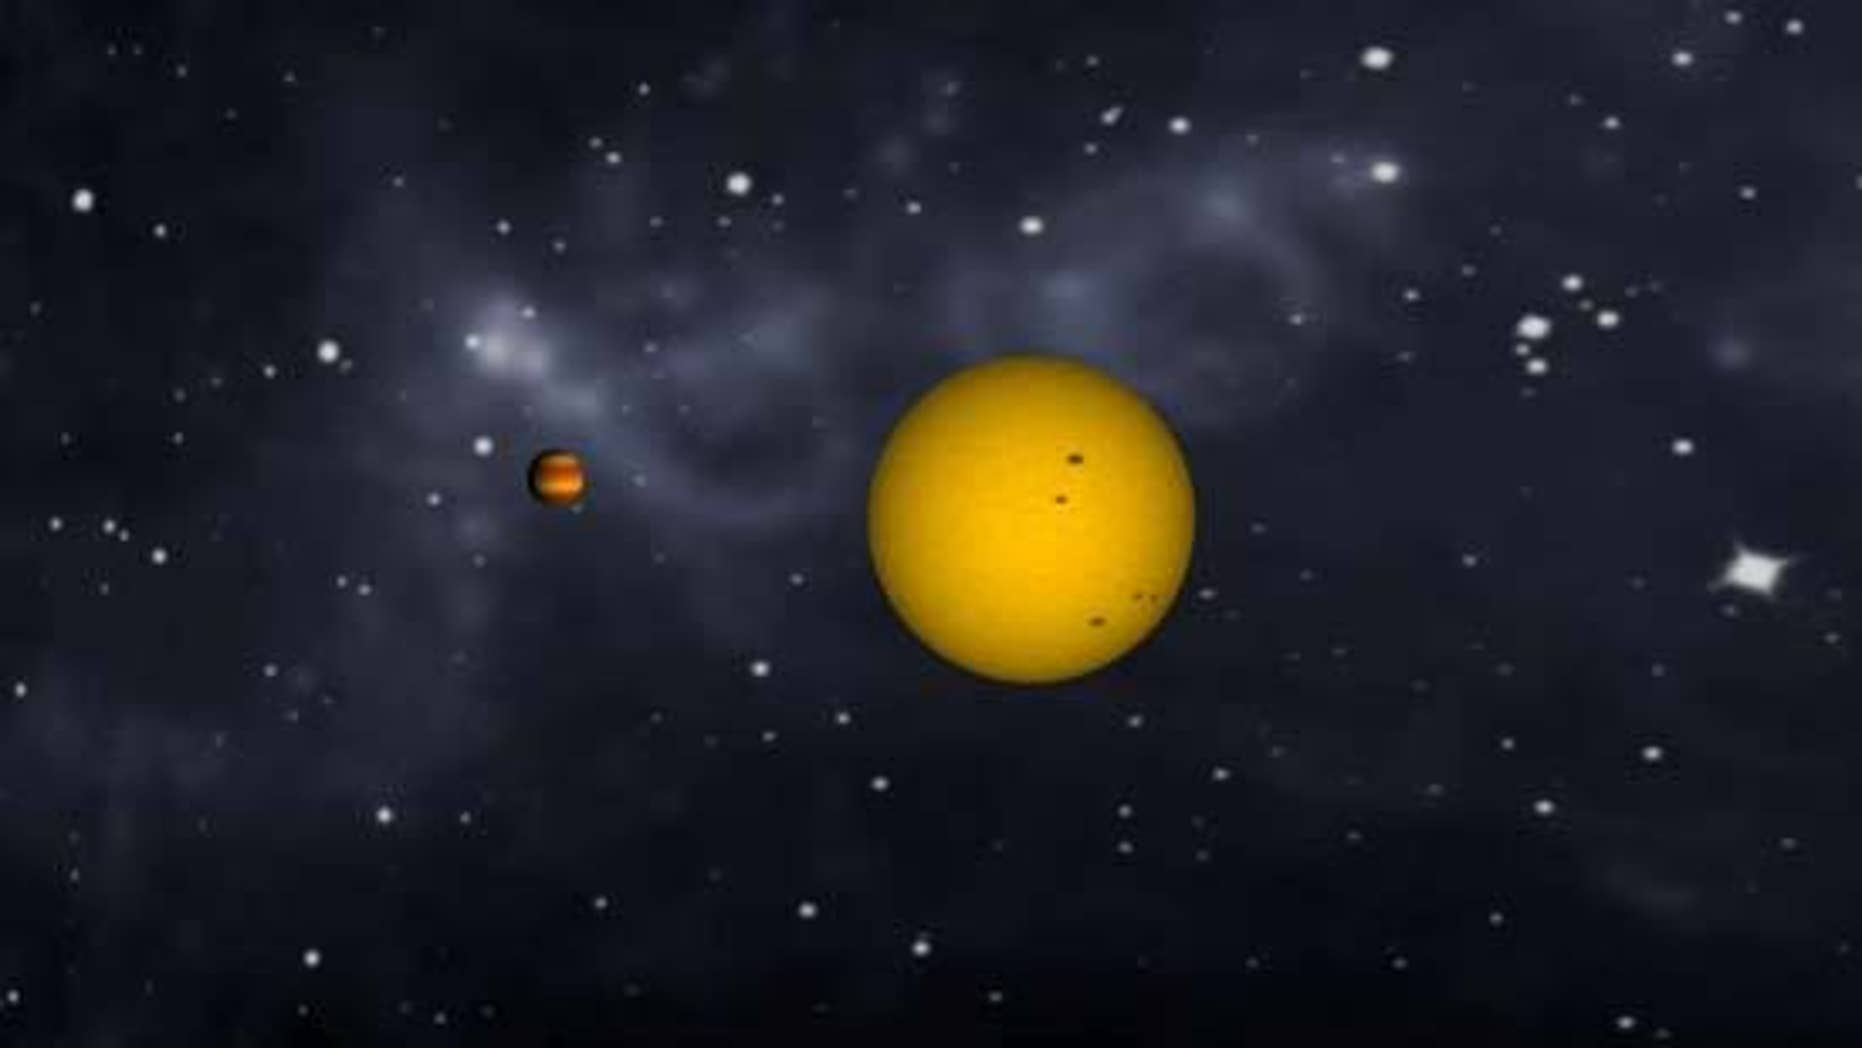 Animation of tidally locked exoplanet CoRoT-1b orbiting its star and changing phases, as our moon does.